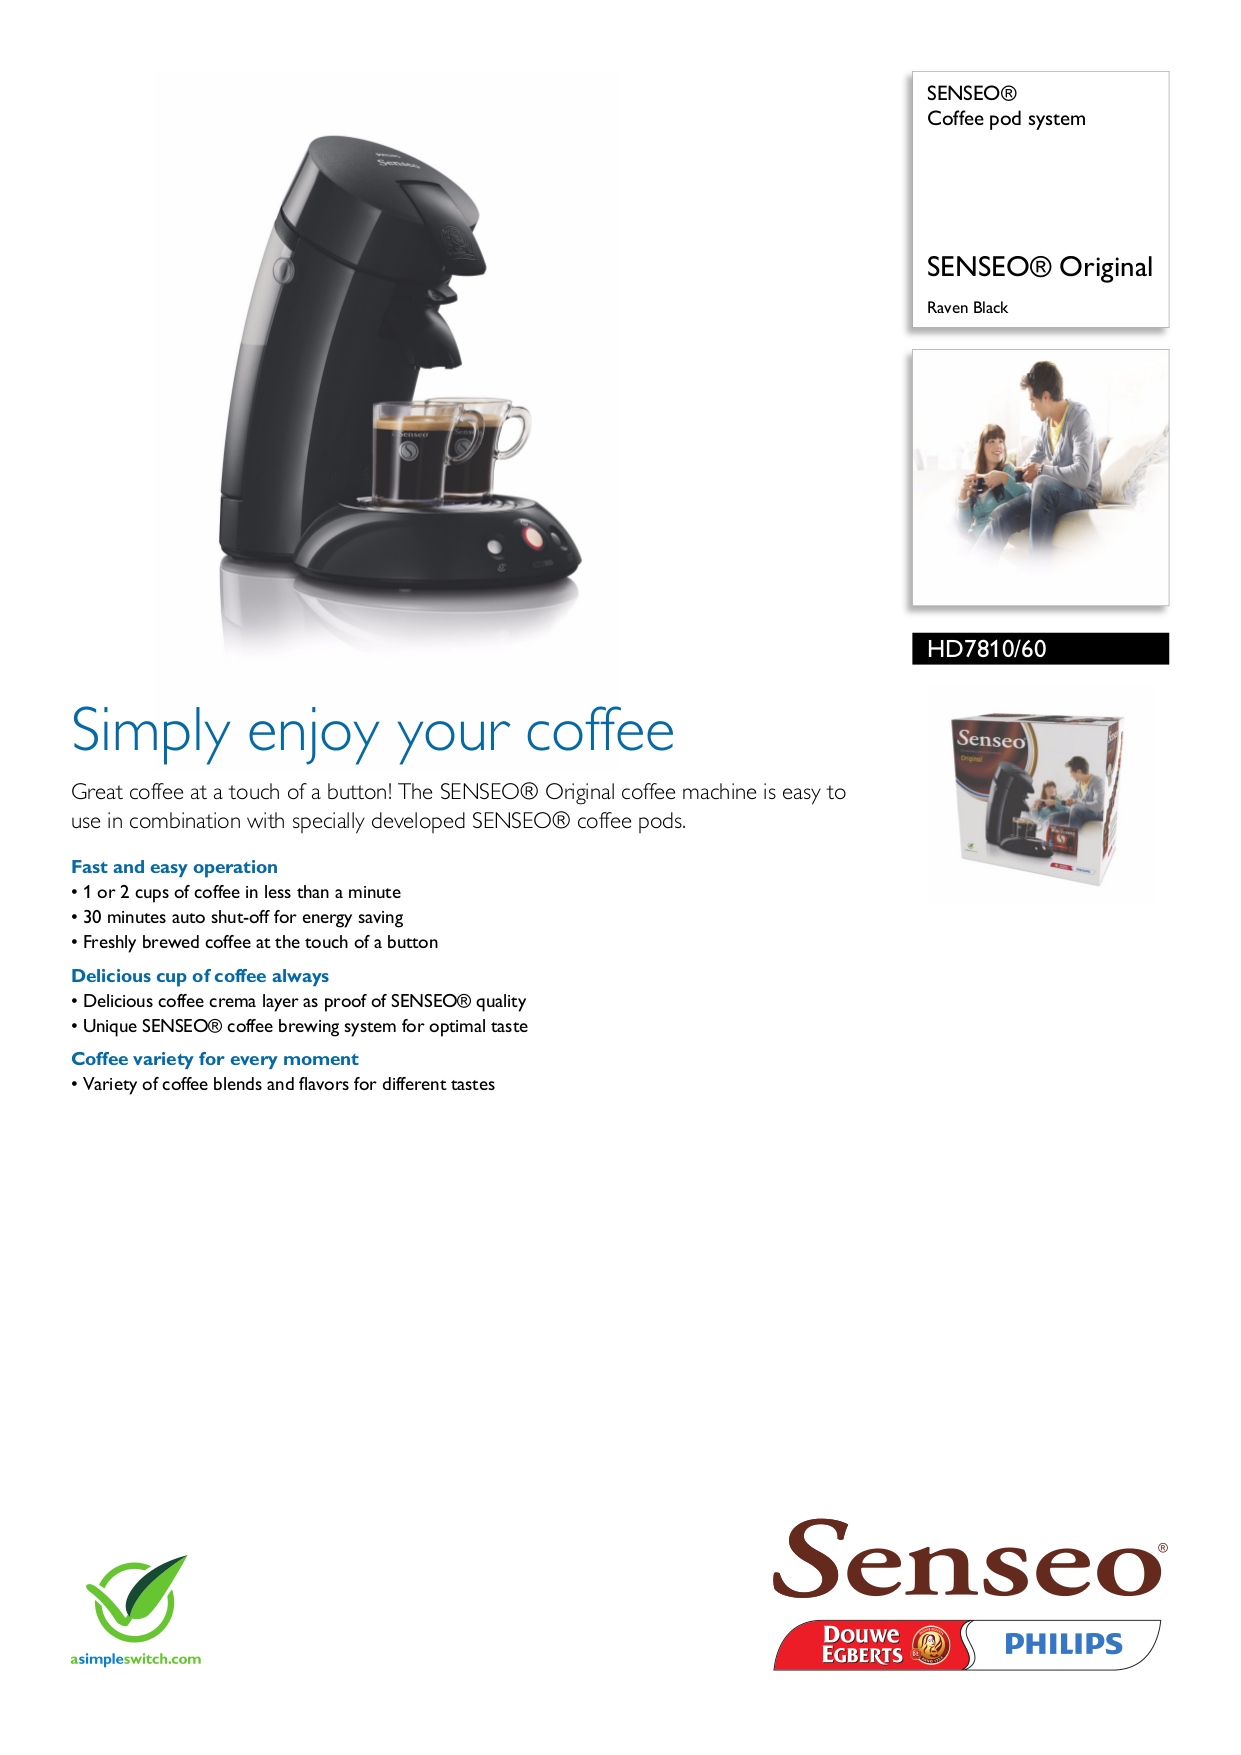 philips senseo coffee maker how to use